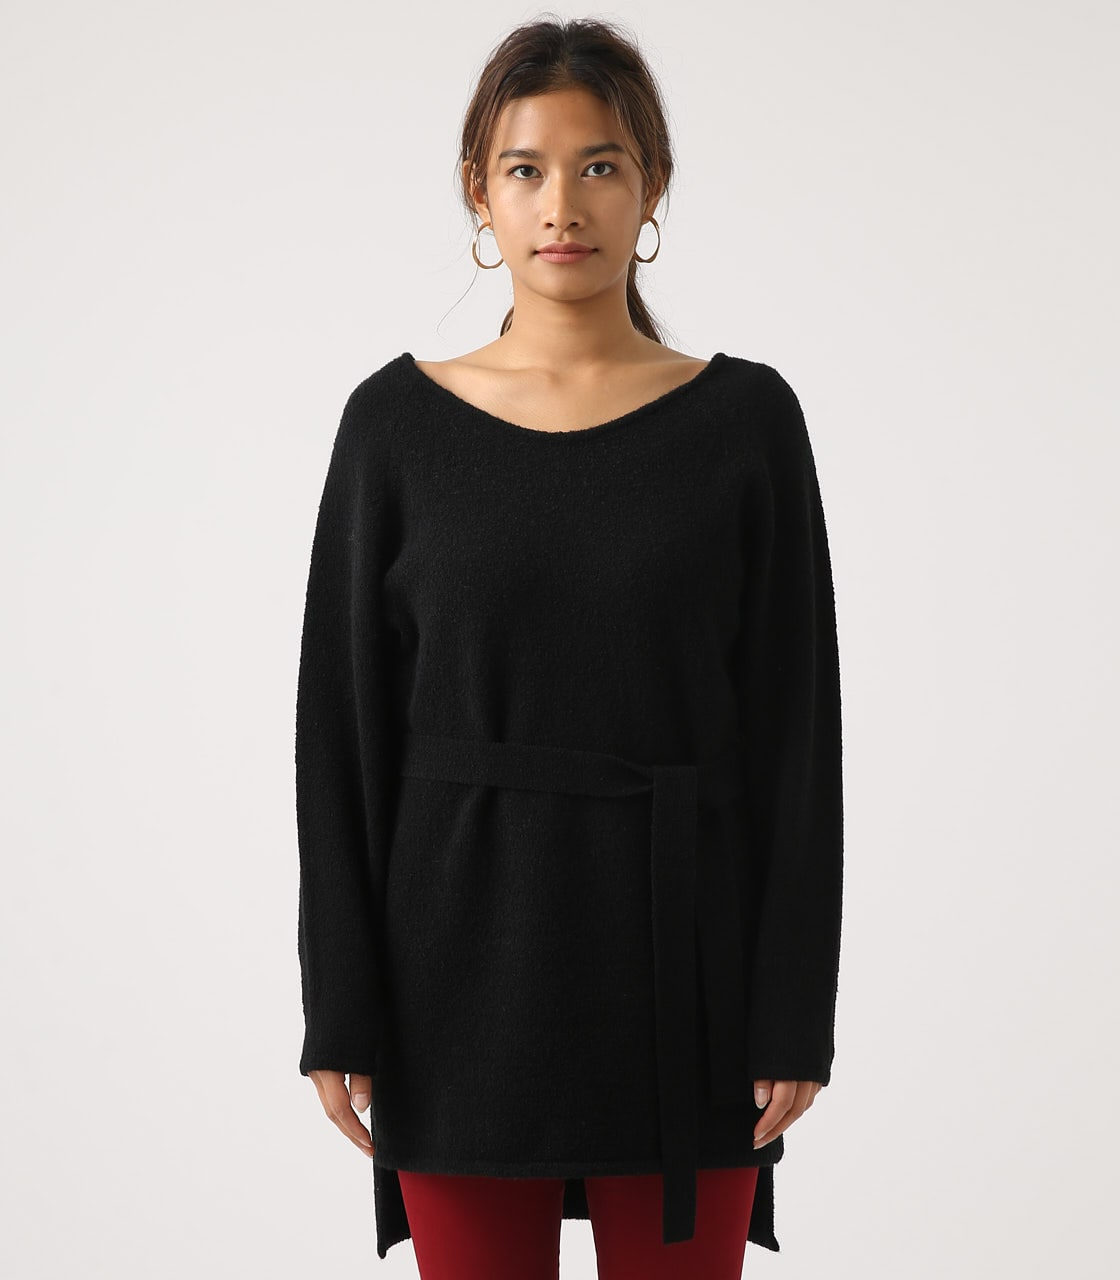 BELT SET V NECK KNIT TUNIC 詳細画像 BLK 5